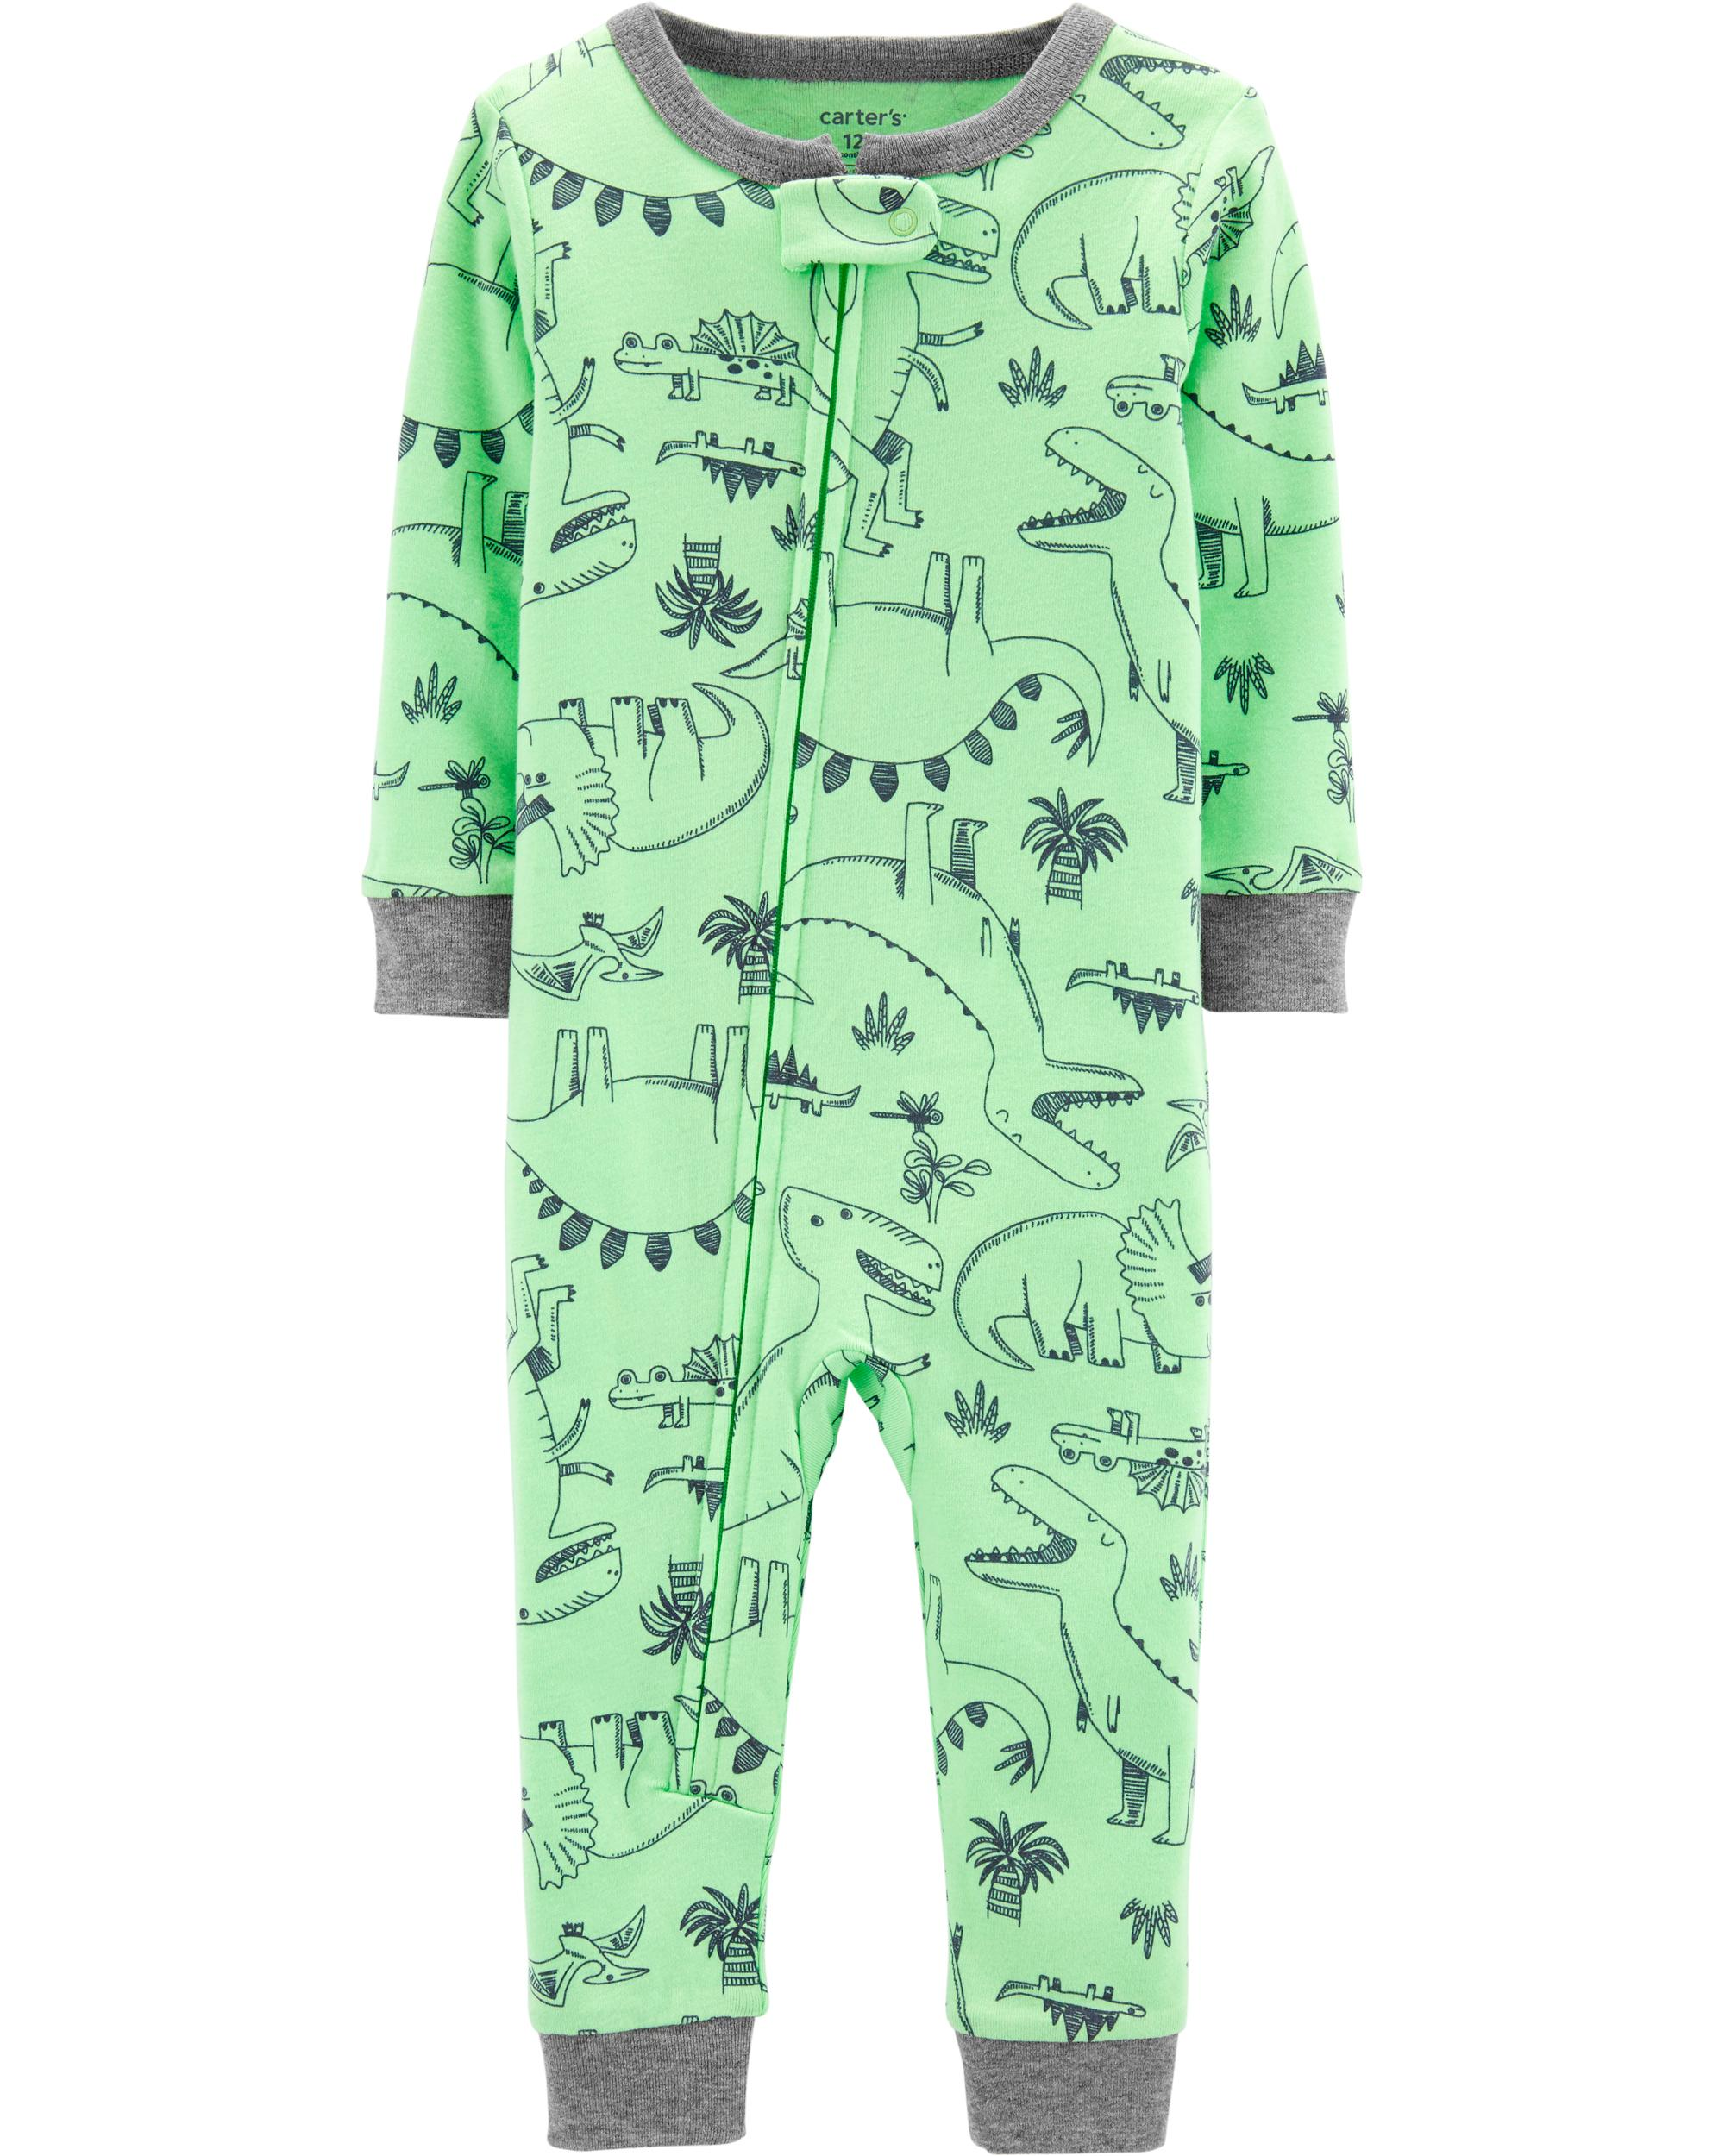 Carters Boys One Piece Dino Snug Fit Cotton Footless Pajamas